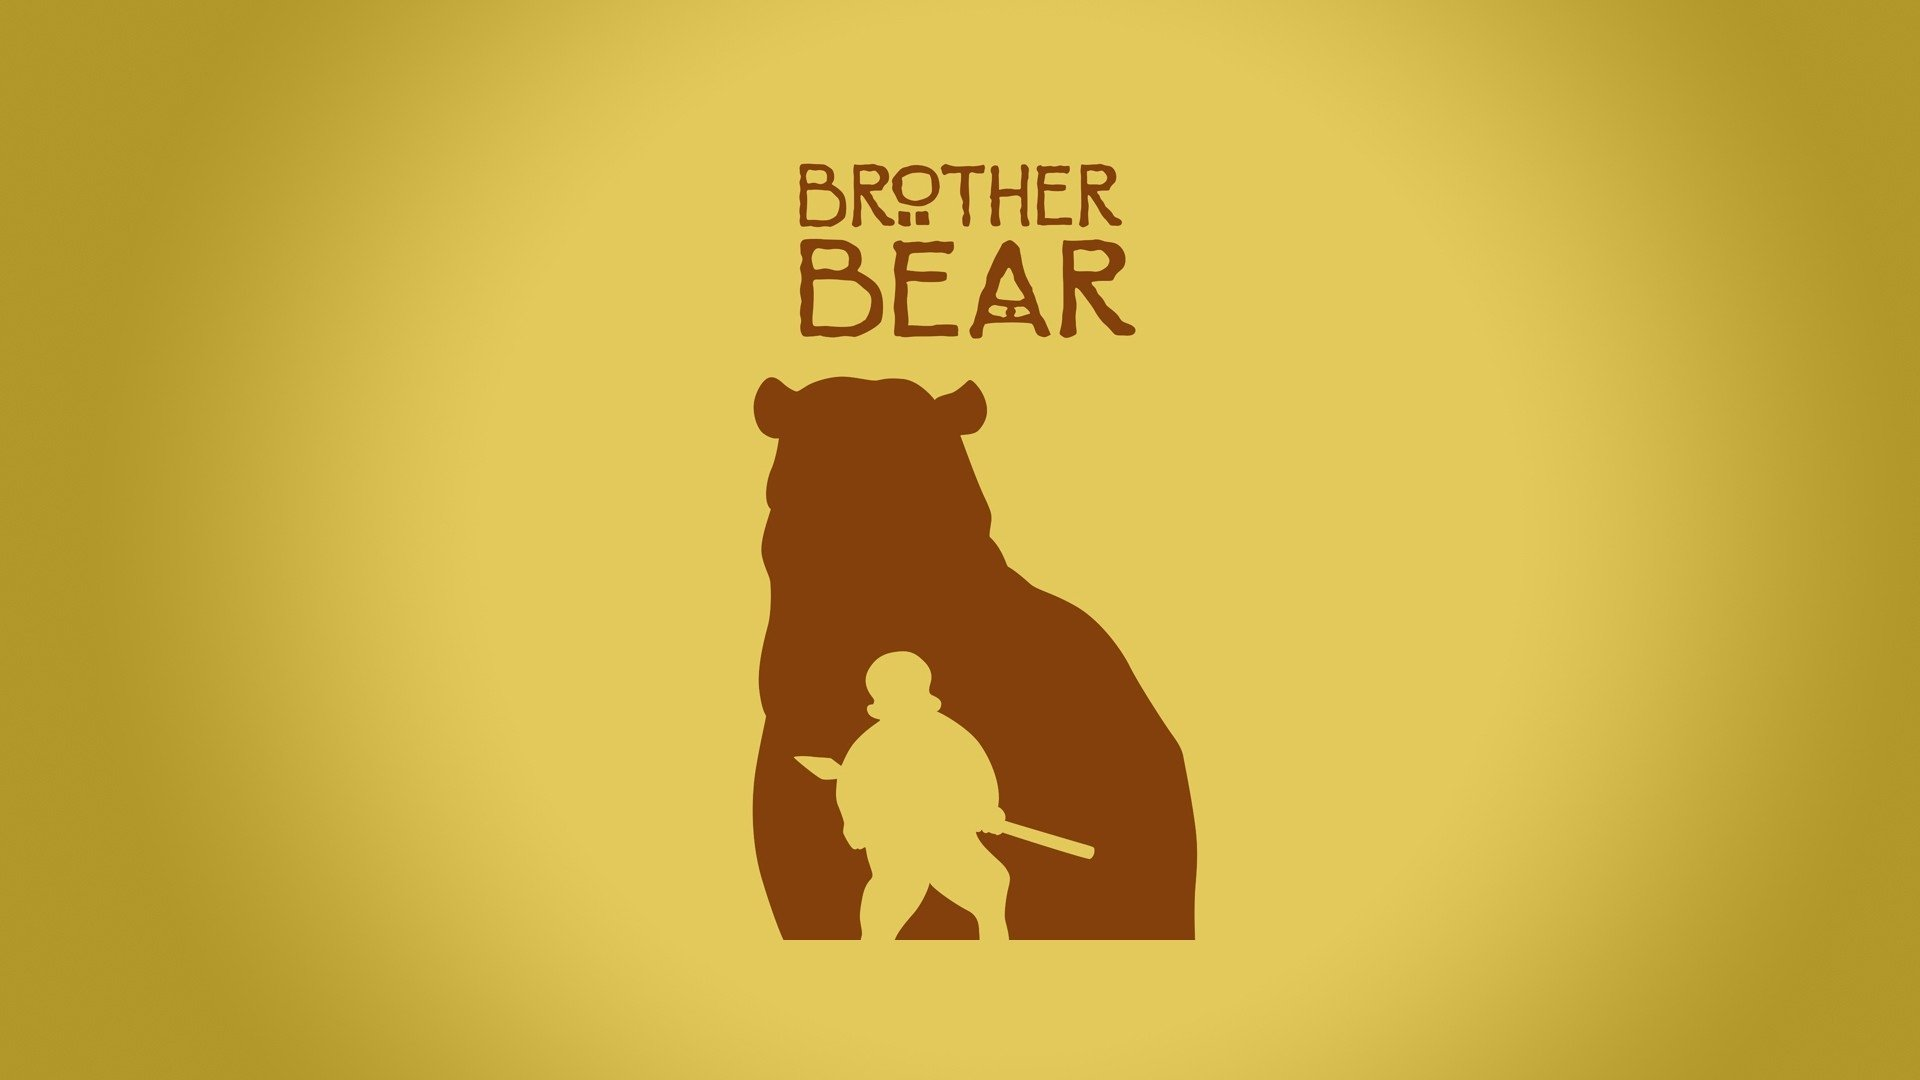 4 Hd Brother Bear Movie Wallpapers